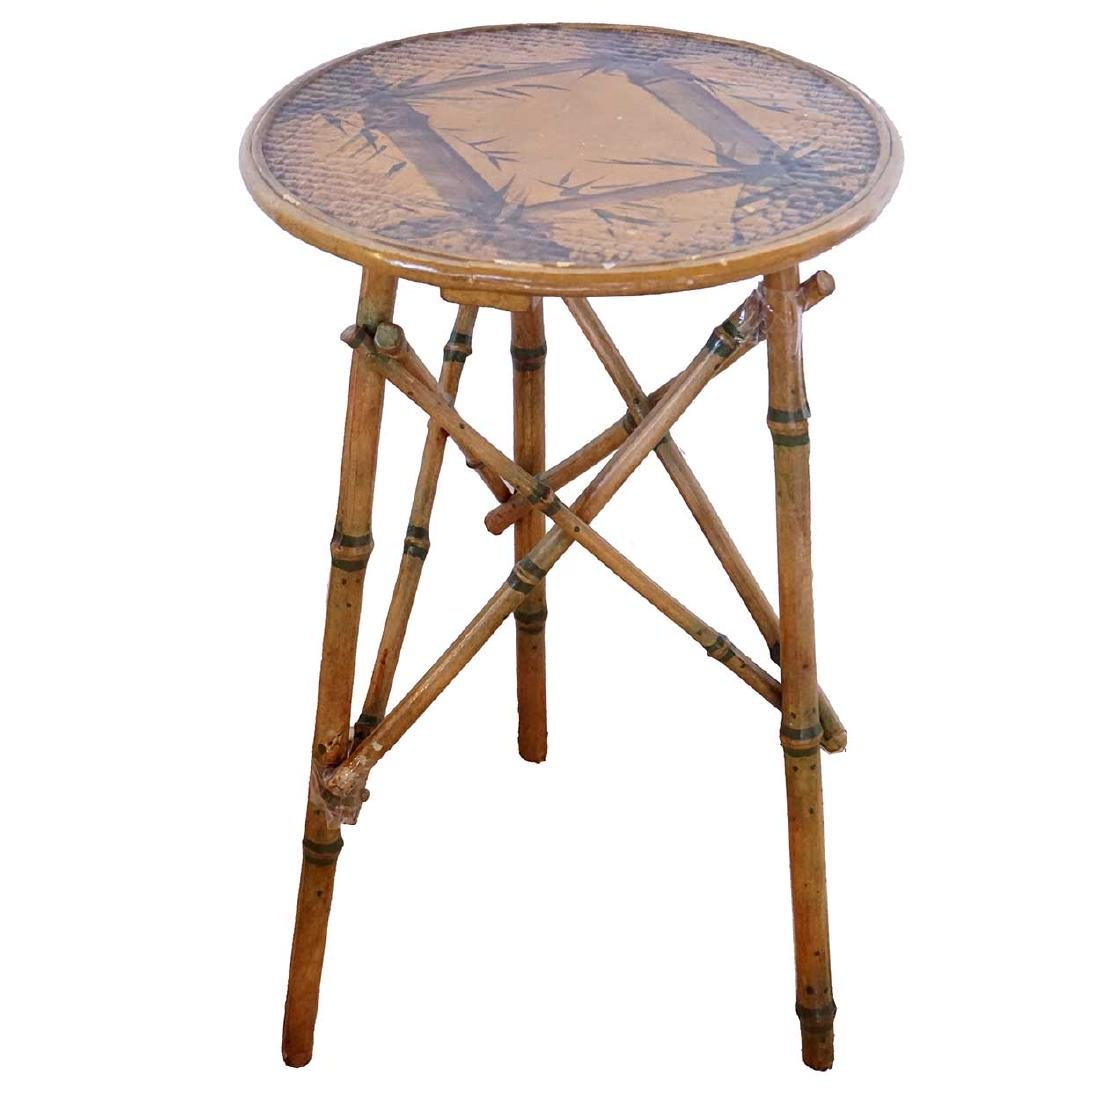 English Victorian Period Bamboo Round Side Table